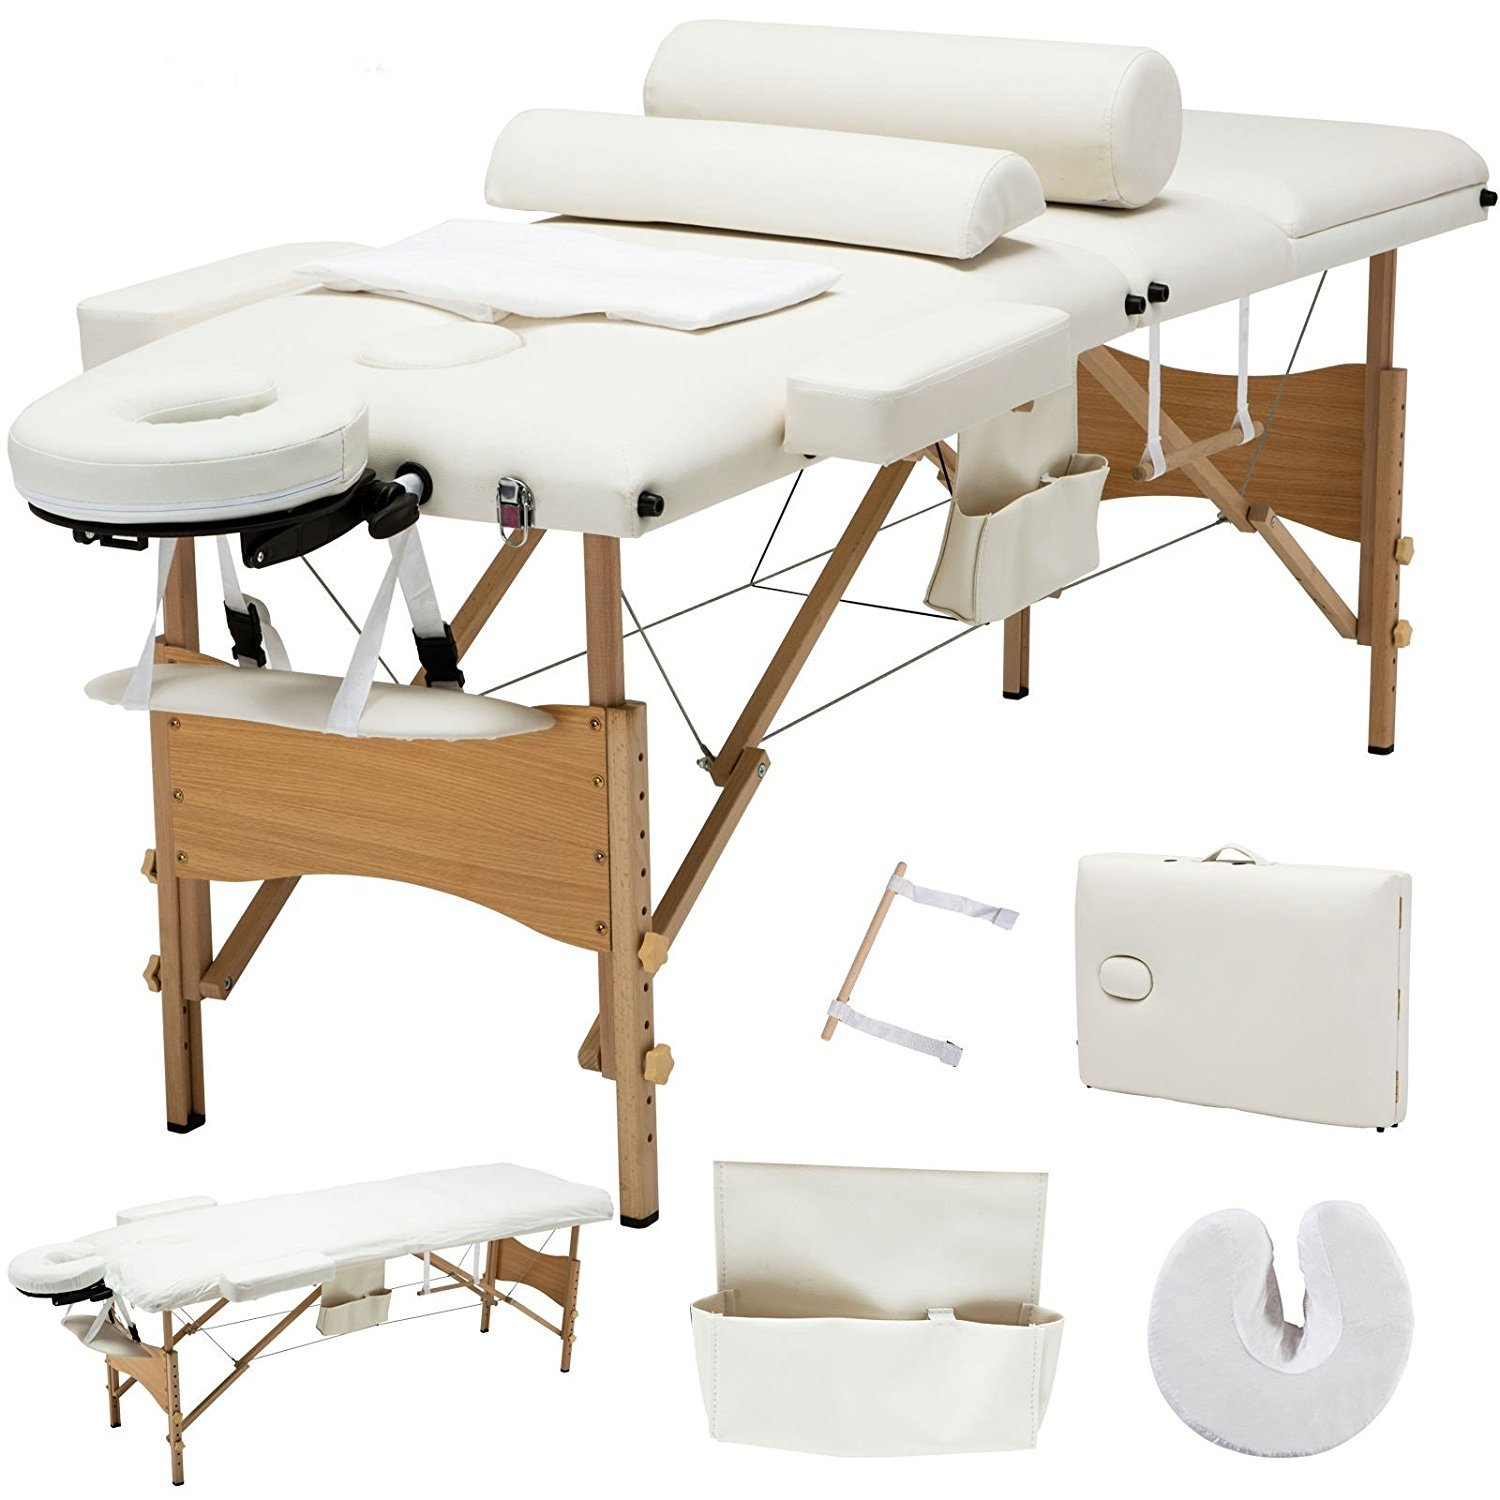 84''L 3 Fold Portable Facial SPA Bed Massage Table Sheet+2 Bolster+Cradle+Hanger + FREE E-Book